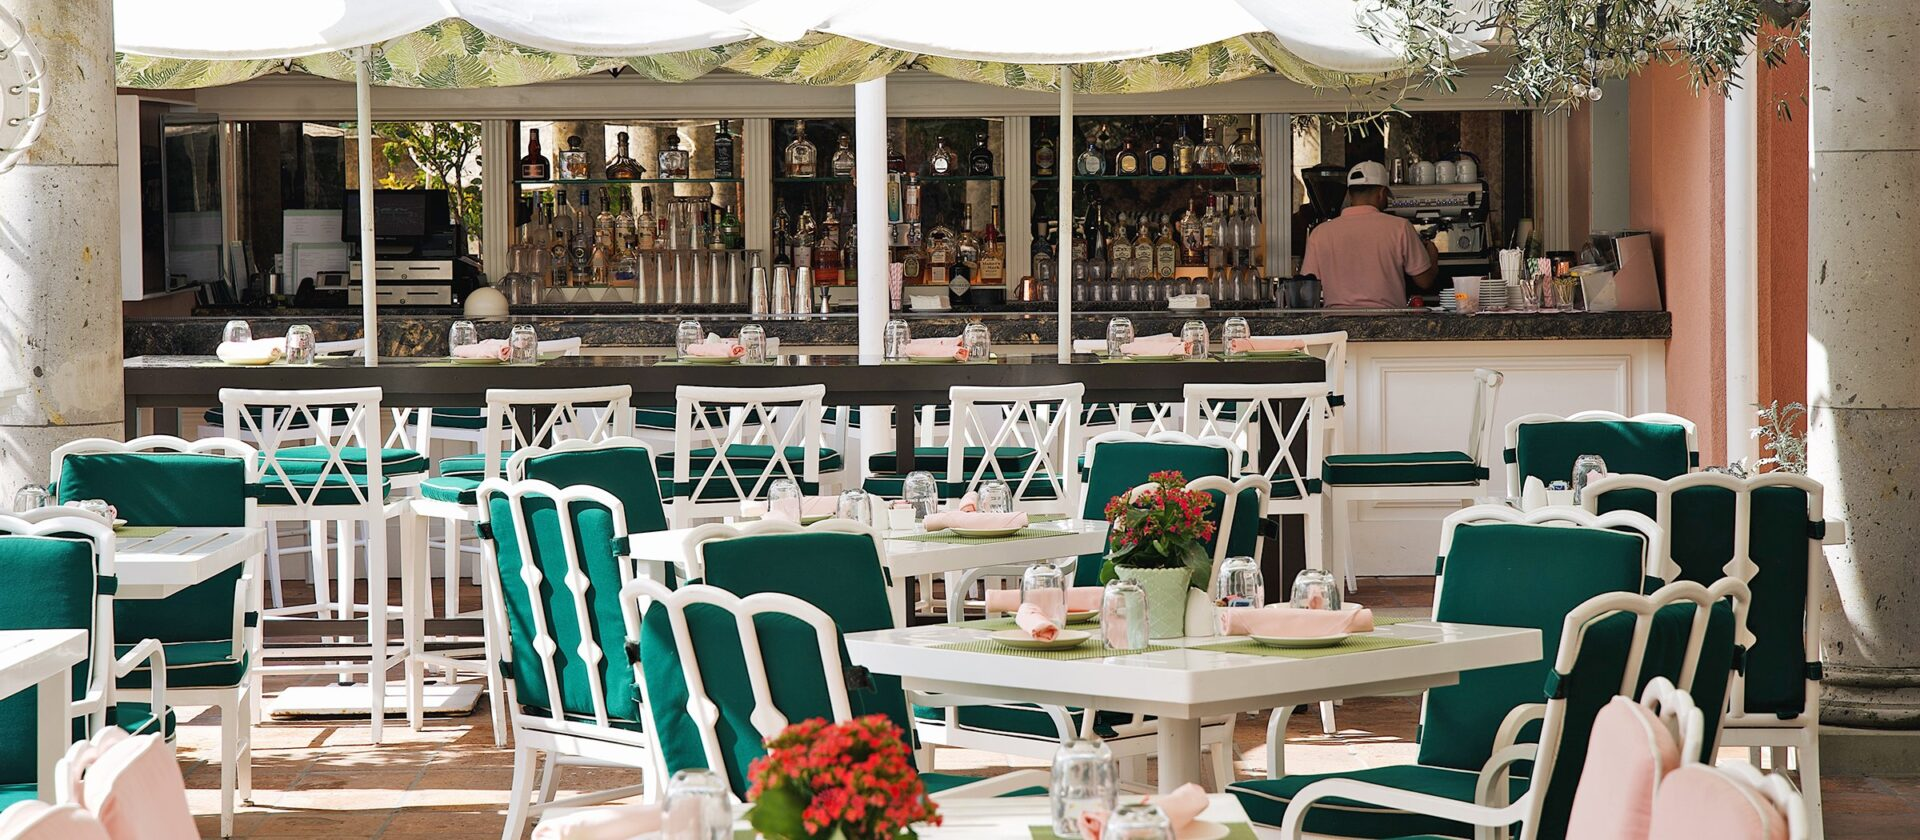 White chairs with green cushions at a bar in Beverly Hills